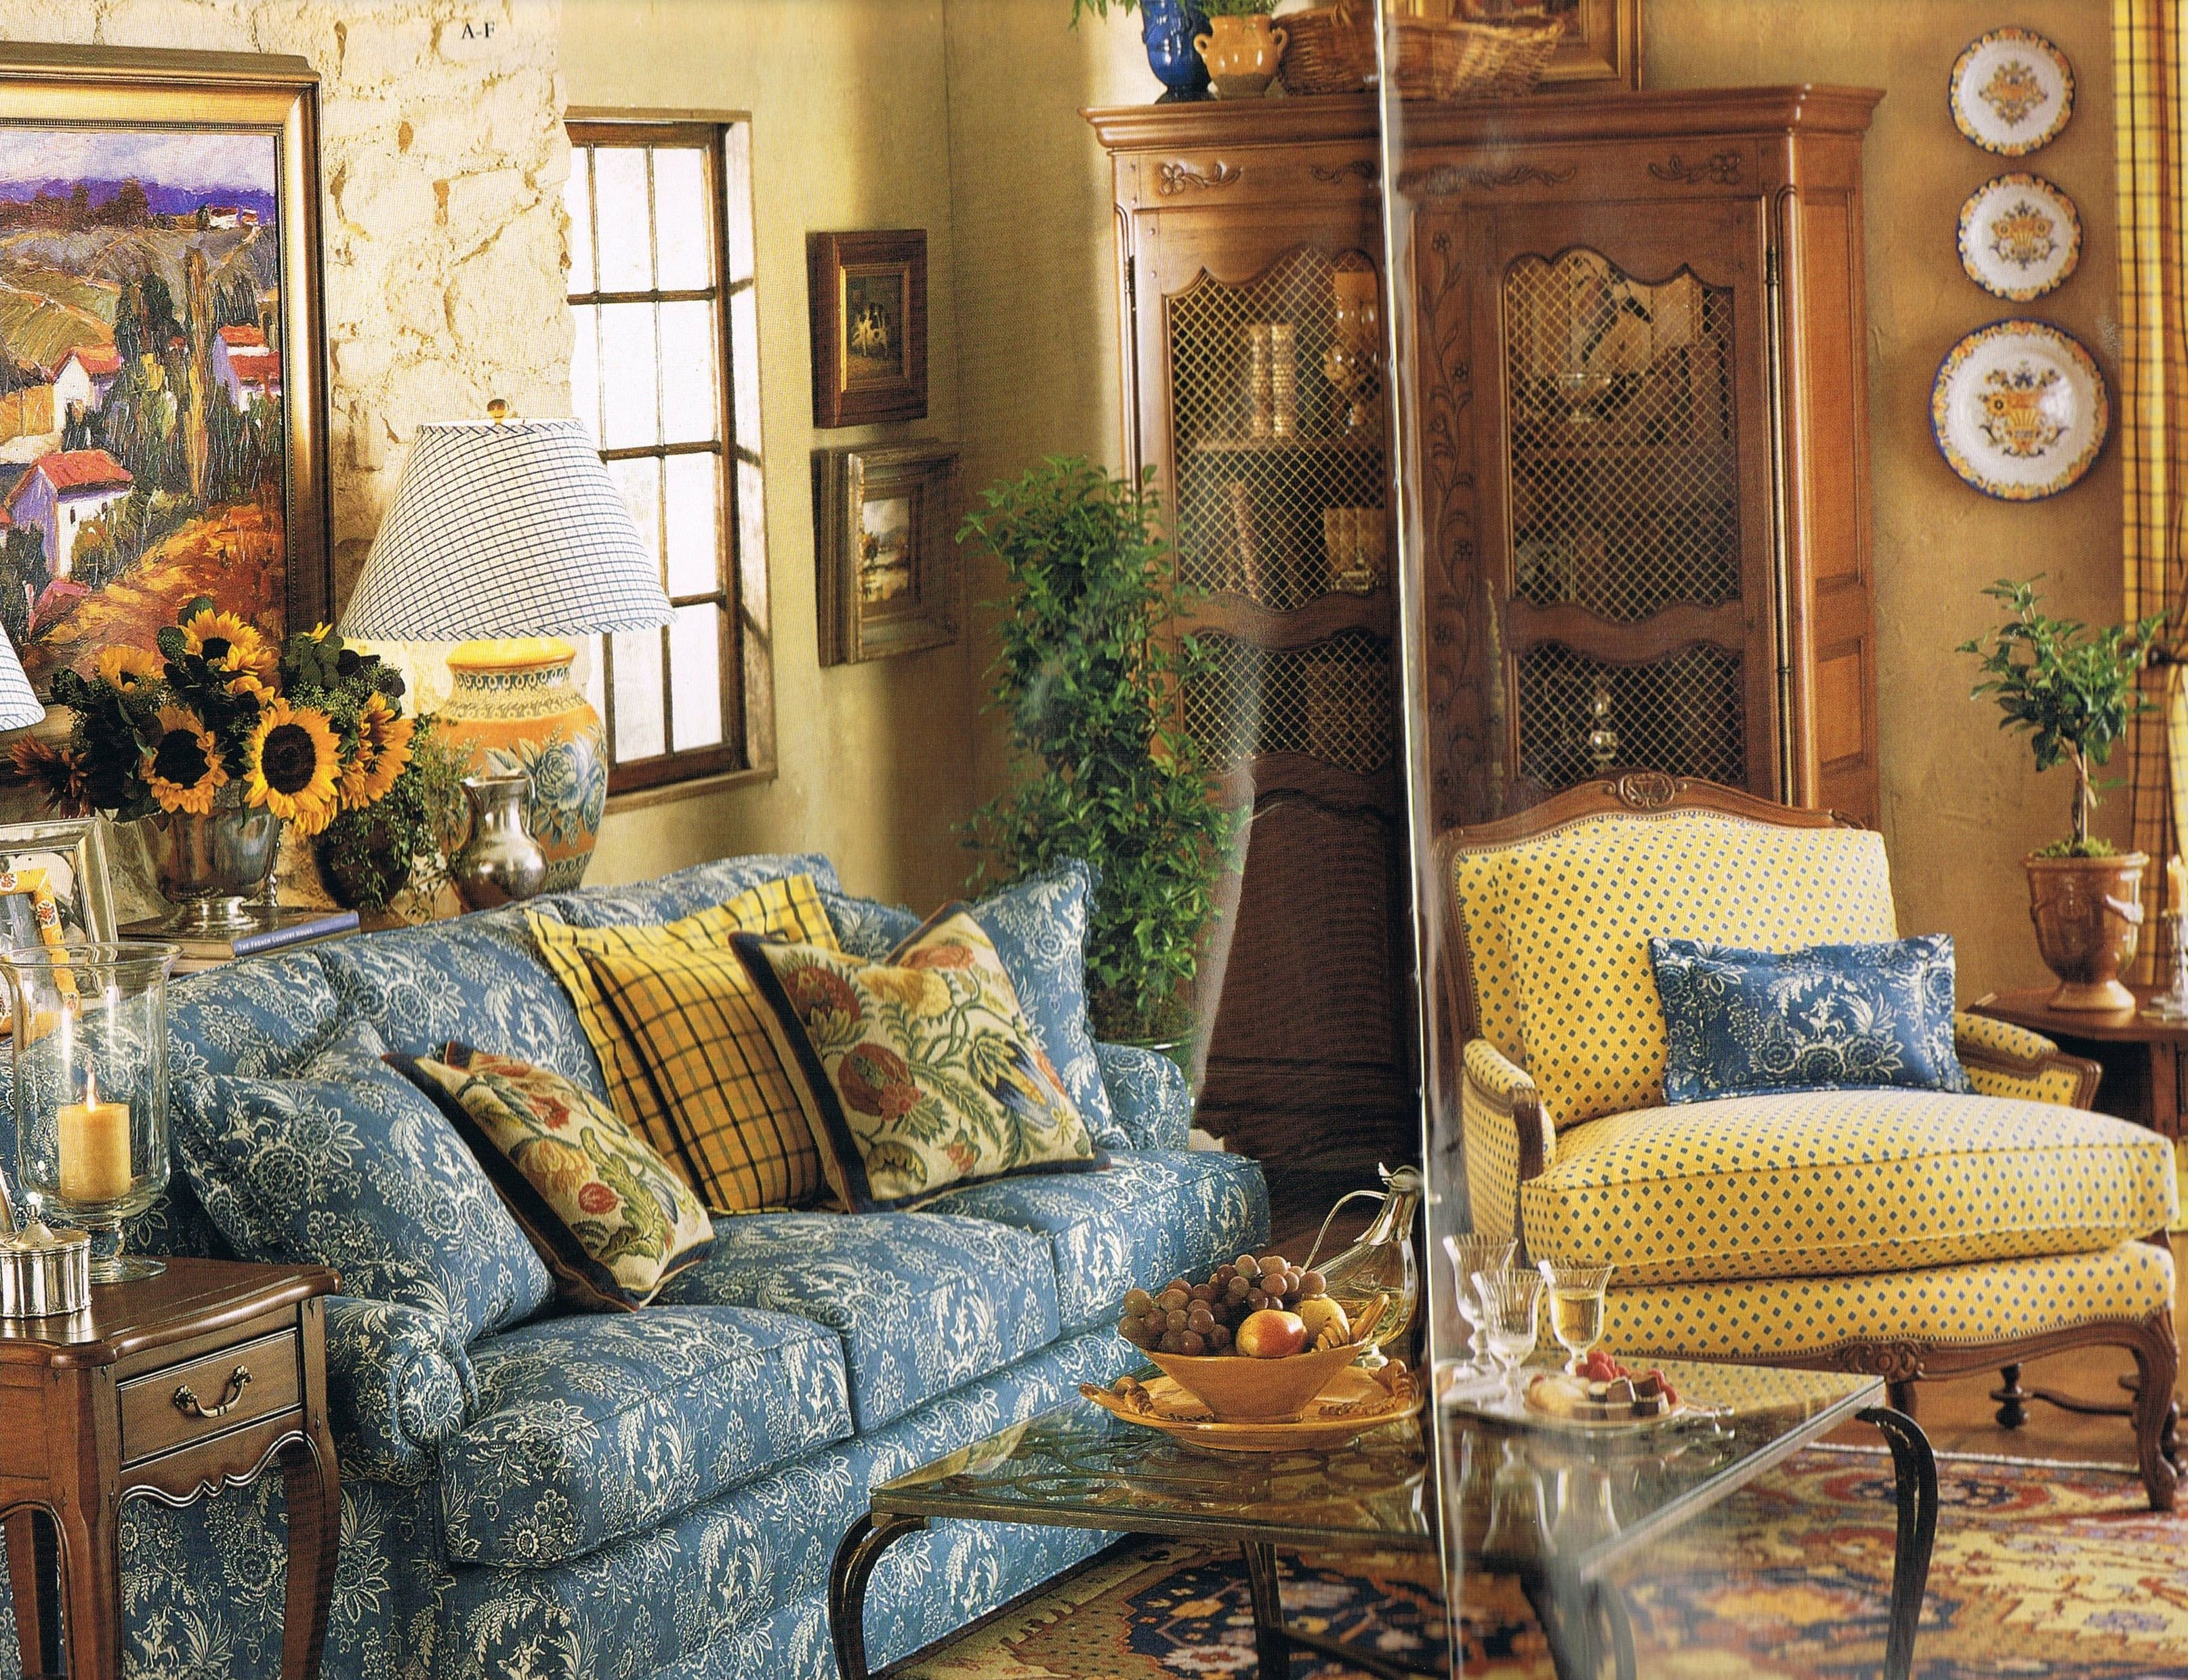 French Country Living Room Decor Luxury Pierre Deux Love the Look although I M Trying to Go More